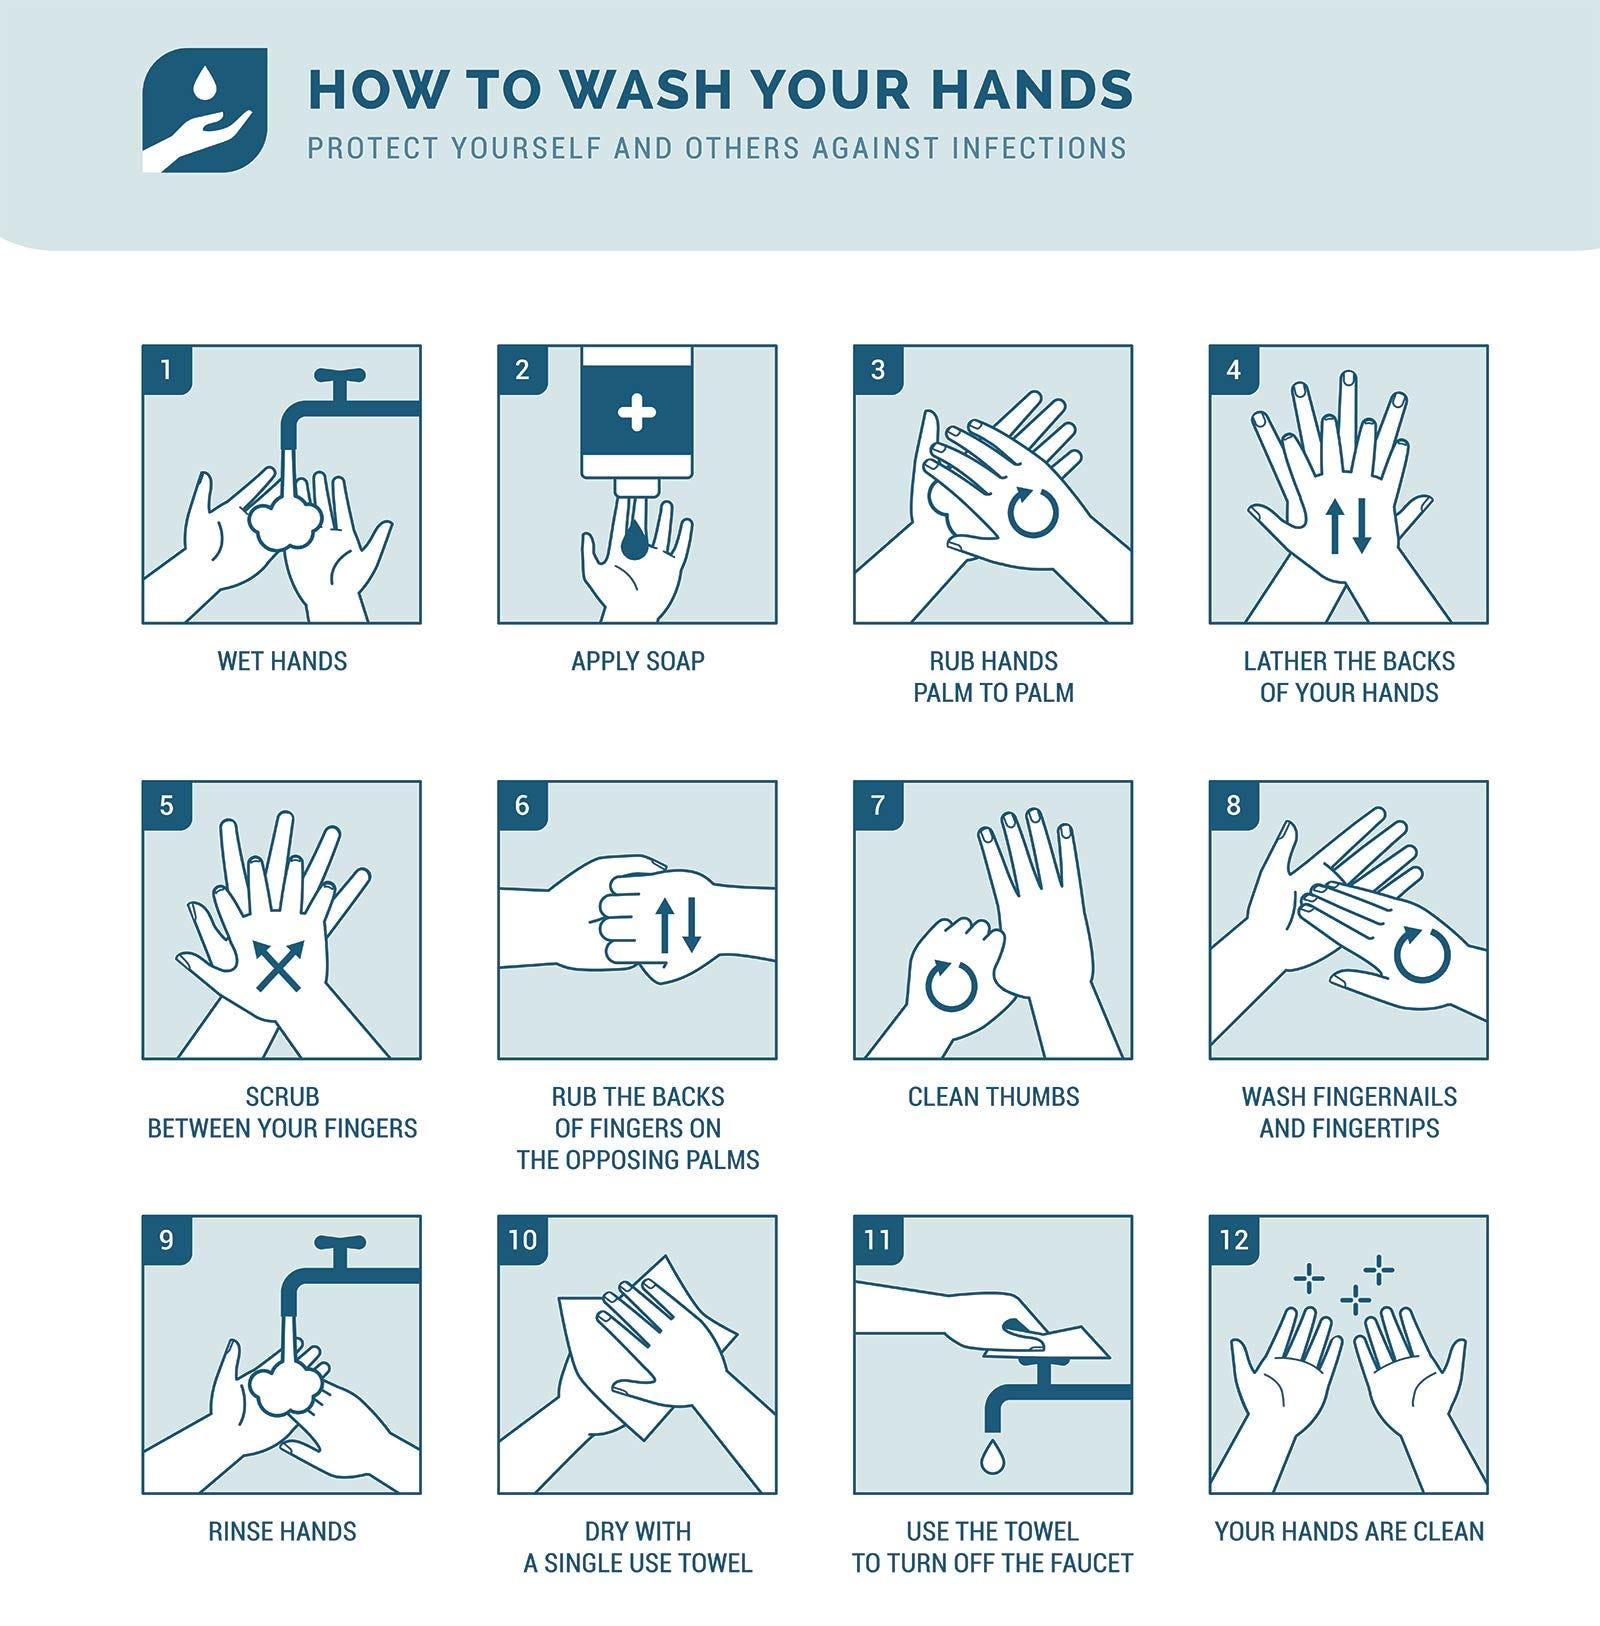 Hand washing instructions detailing the steps of effective hand washing.